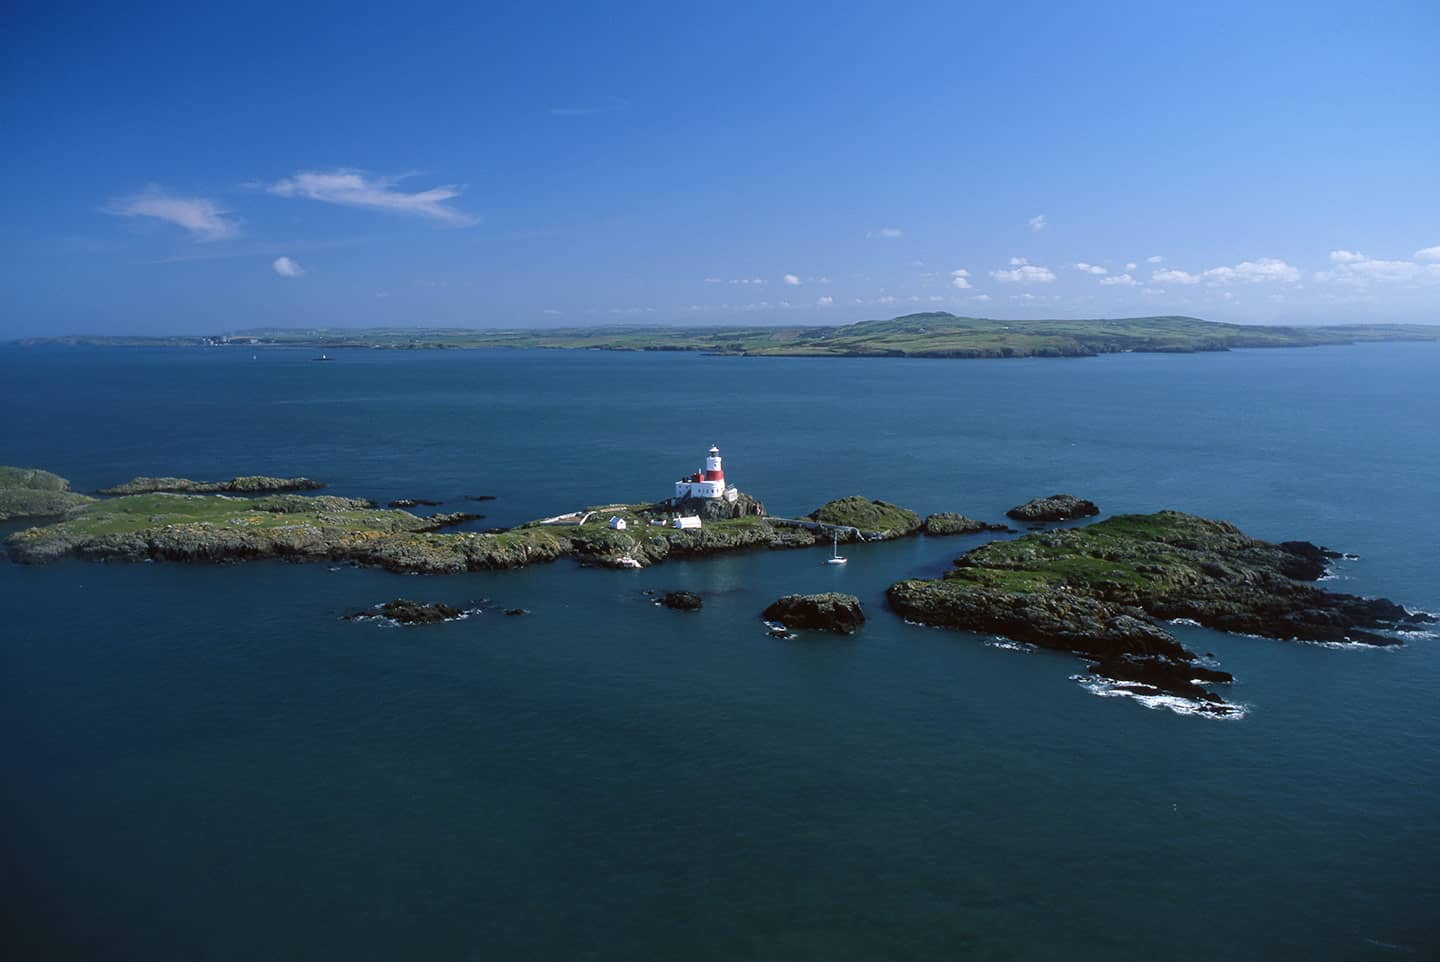 Image of the Skerries lighthouse and islands, North Wales